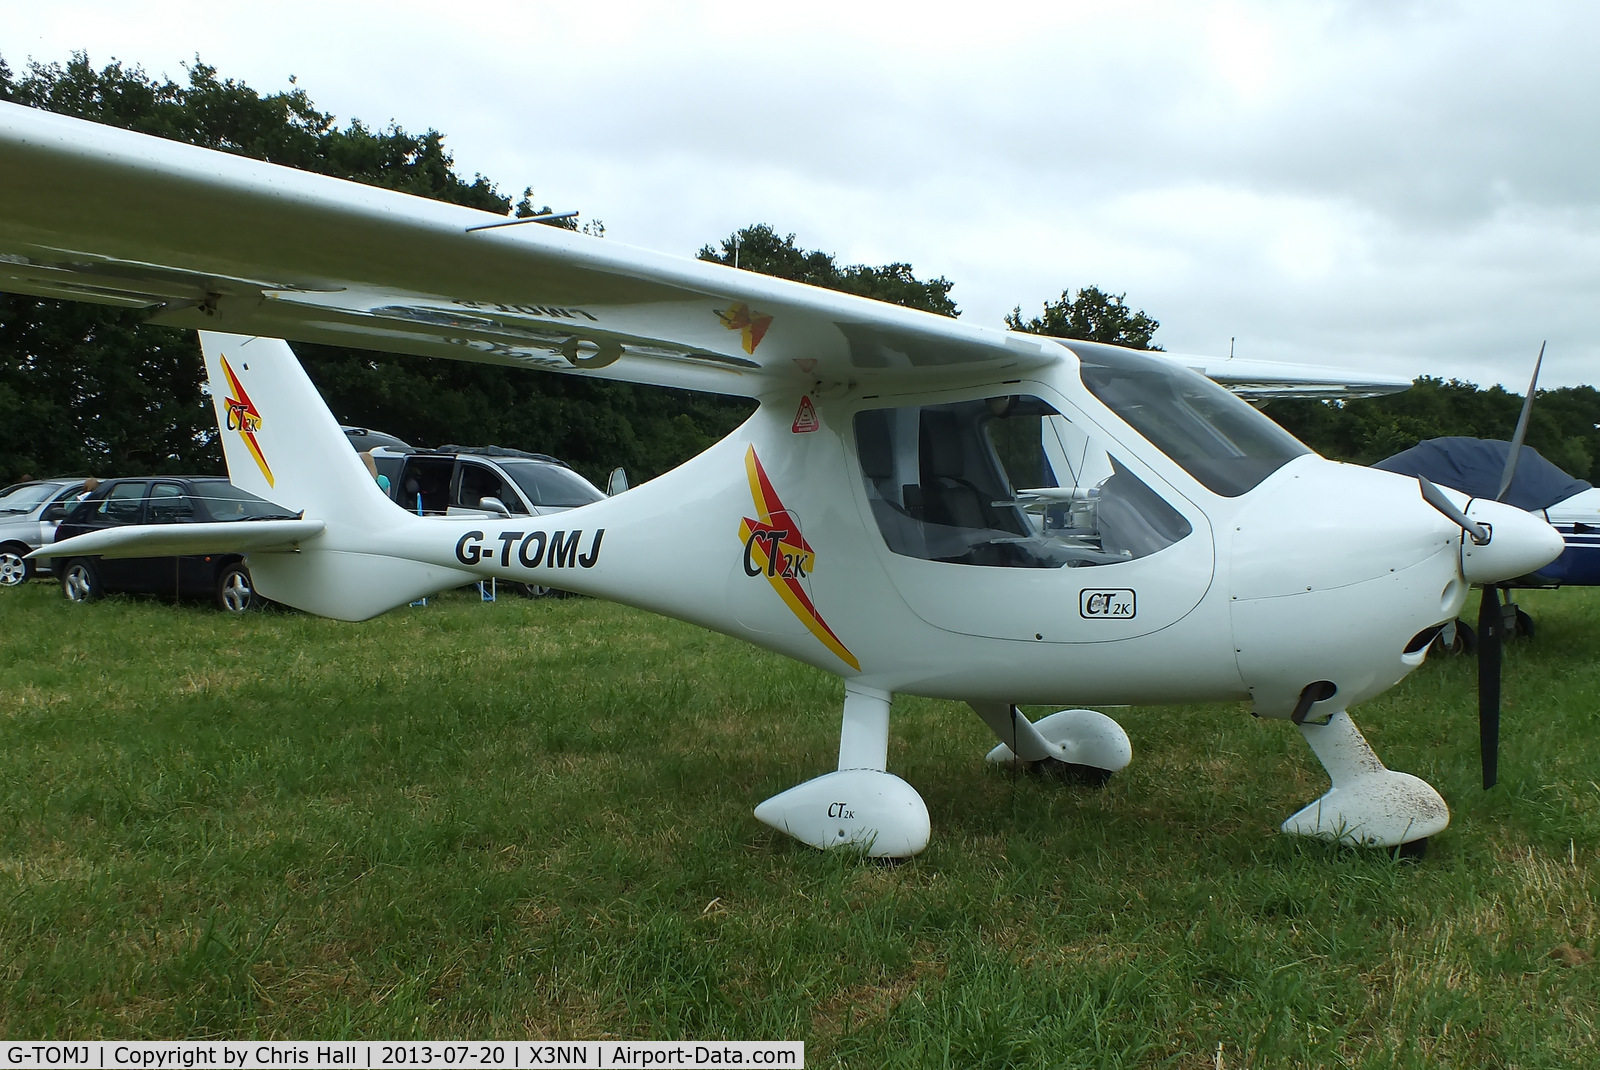 G-TOMJ, 2003 Flight Design CT2K C/N 7975, at the Stoke Golding stakeout 2013